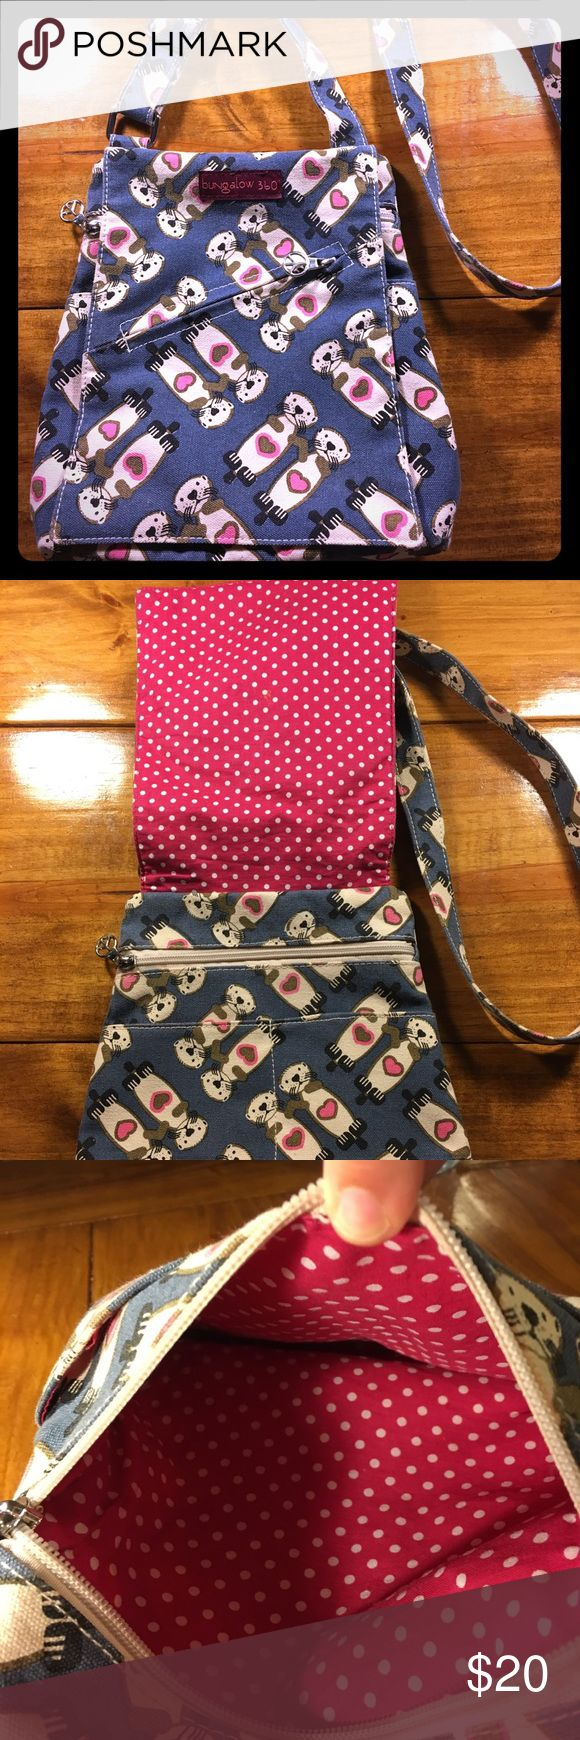 Bungalow 360 Otter Love Crossbody I'm in love with otters and you will too! Bungalow 360 preowned but gently used. Great Crossbody for travel and great for on the go! bungalow 360 Bags Crossbody Bags